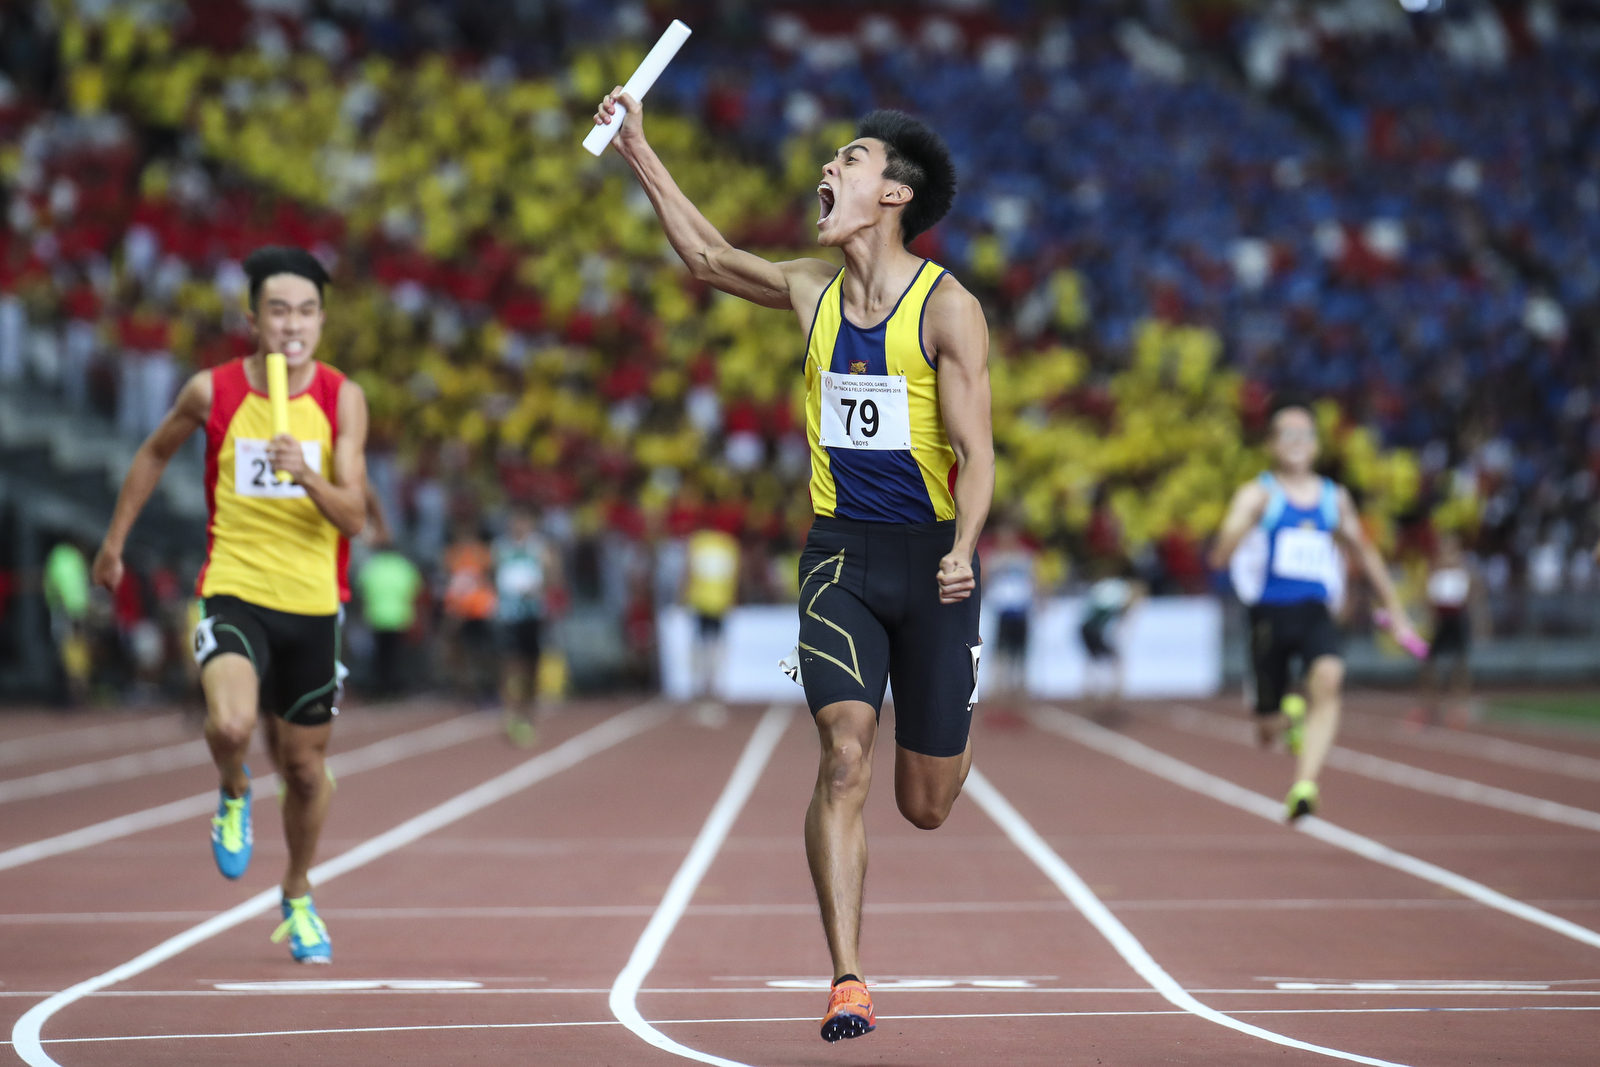 Joshua Lim of Anglo-Chinese School (Independent) celebrates after anchoring his team to win the National Schools boys' 'A' Division boys' 4x100m relay final at the National Stadium on April 12, 2018 in Singapore. (Photo © Yong Teck Lim/Red Sports)